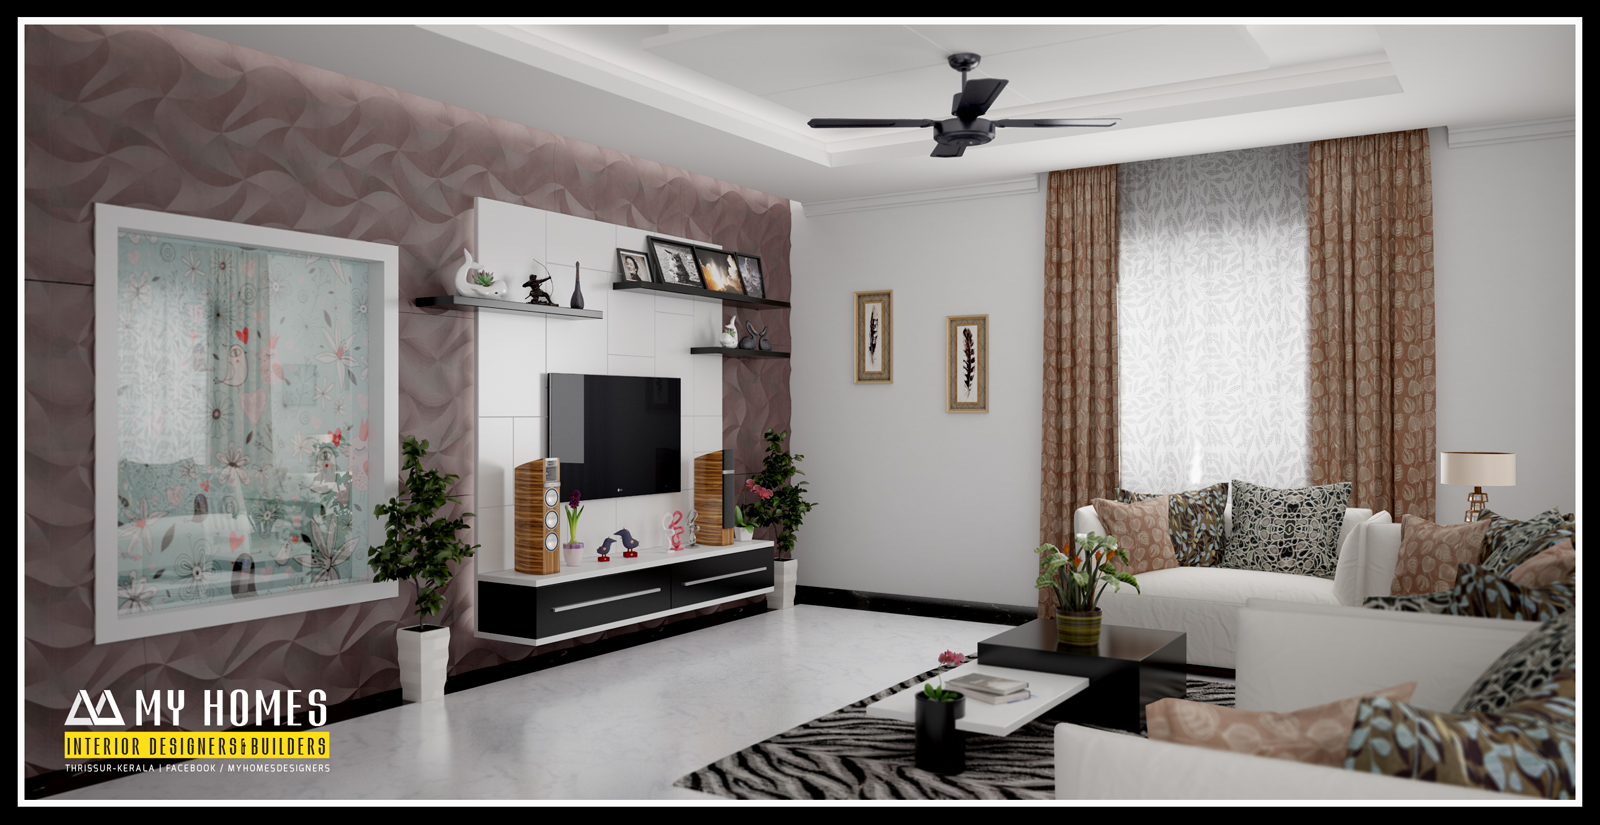 Kerala interior design ideas from designing company thrissur for House interior decoration